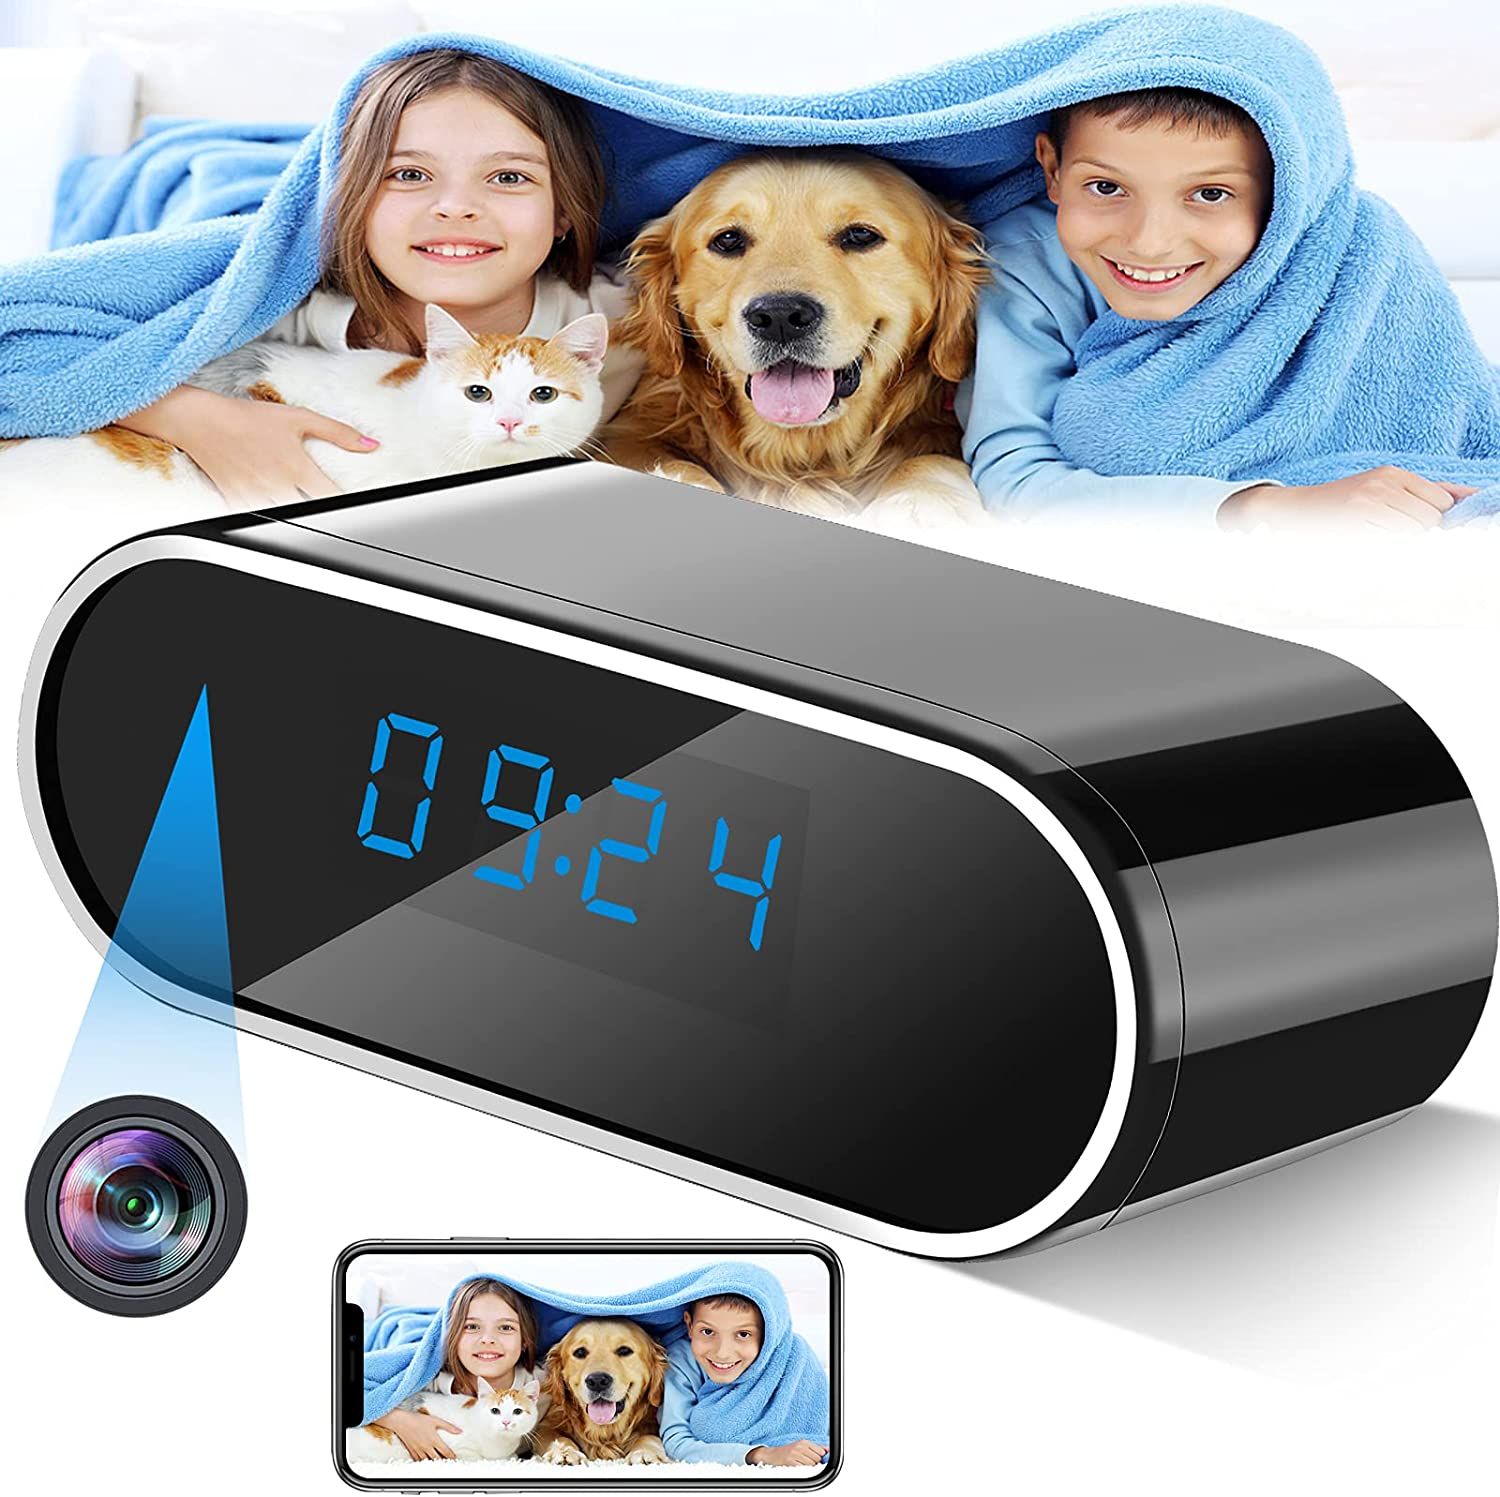 Hidden Camera, Spy Camera Wireless WiFi 1080P Hidden Cameras Clock with Night Vision,Motion Detection,Loop Recording,Small Nanny Cam Secret Camera with Phone App for Home Surveillance Room Baby Pet